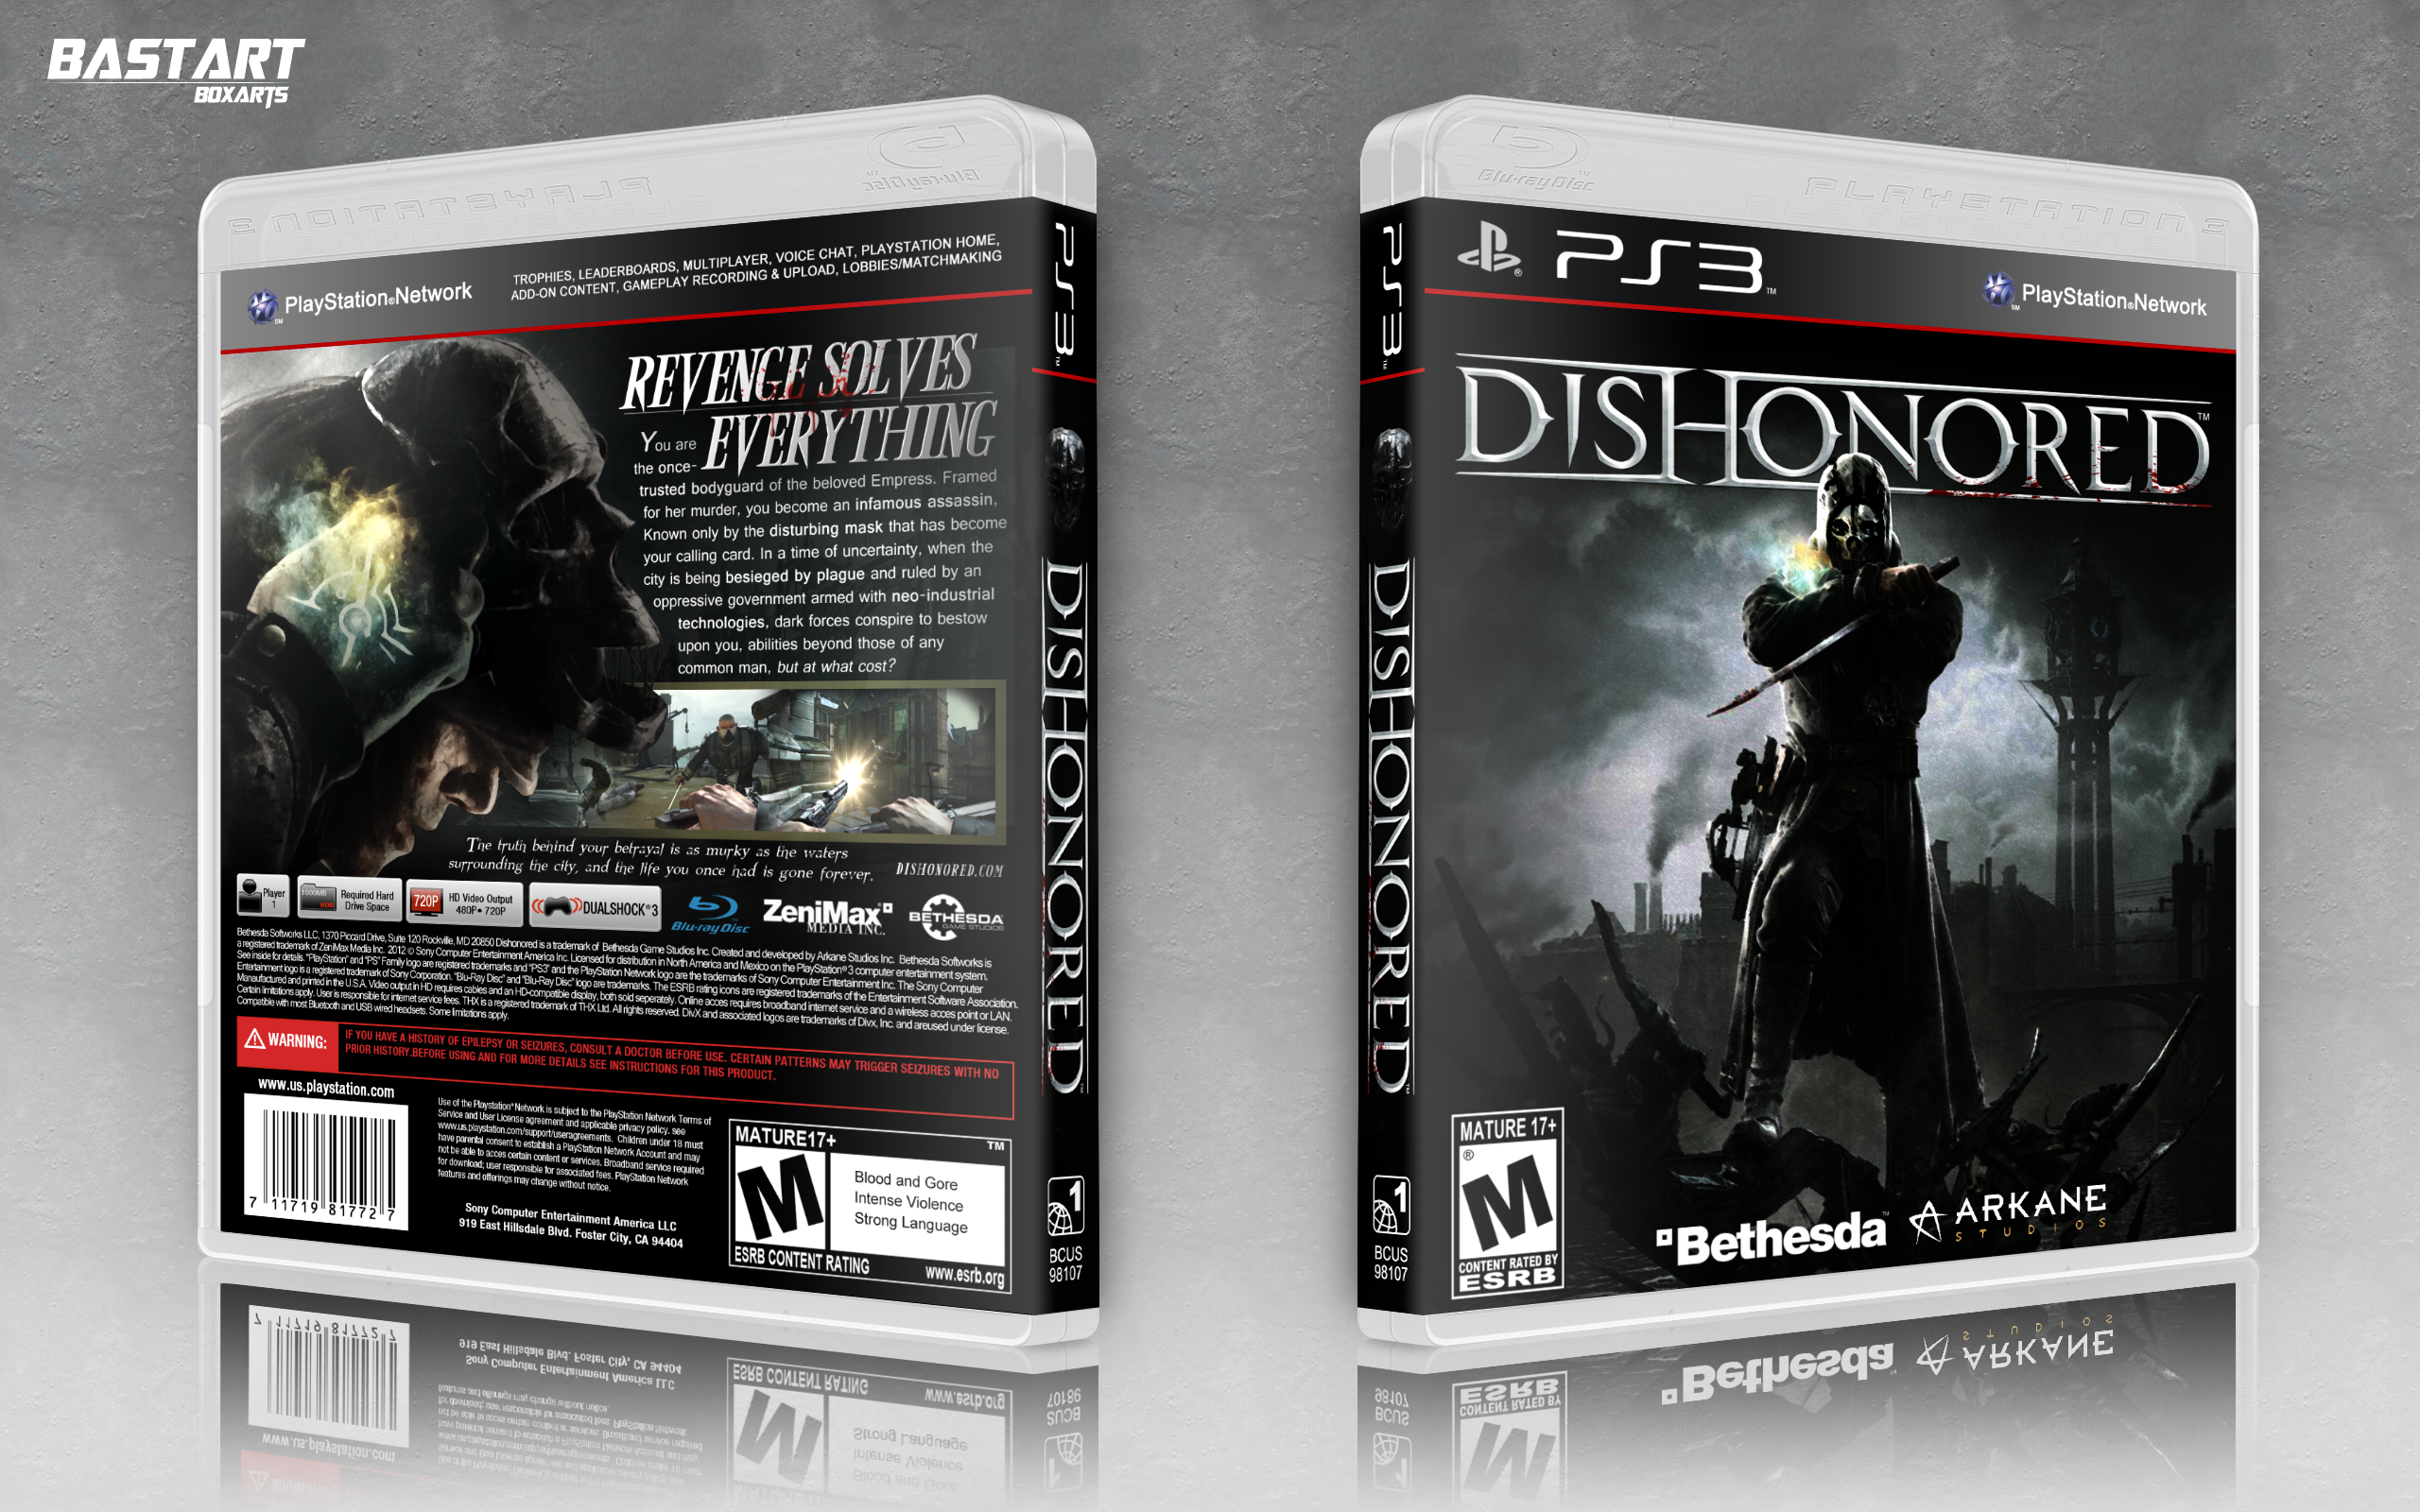 Dishonored box cover